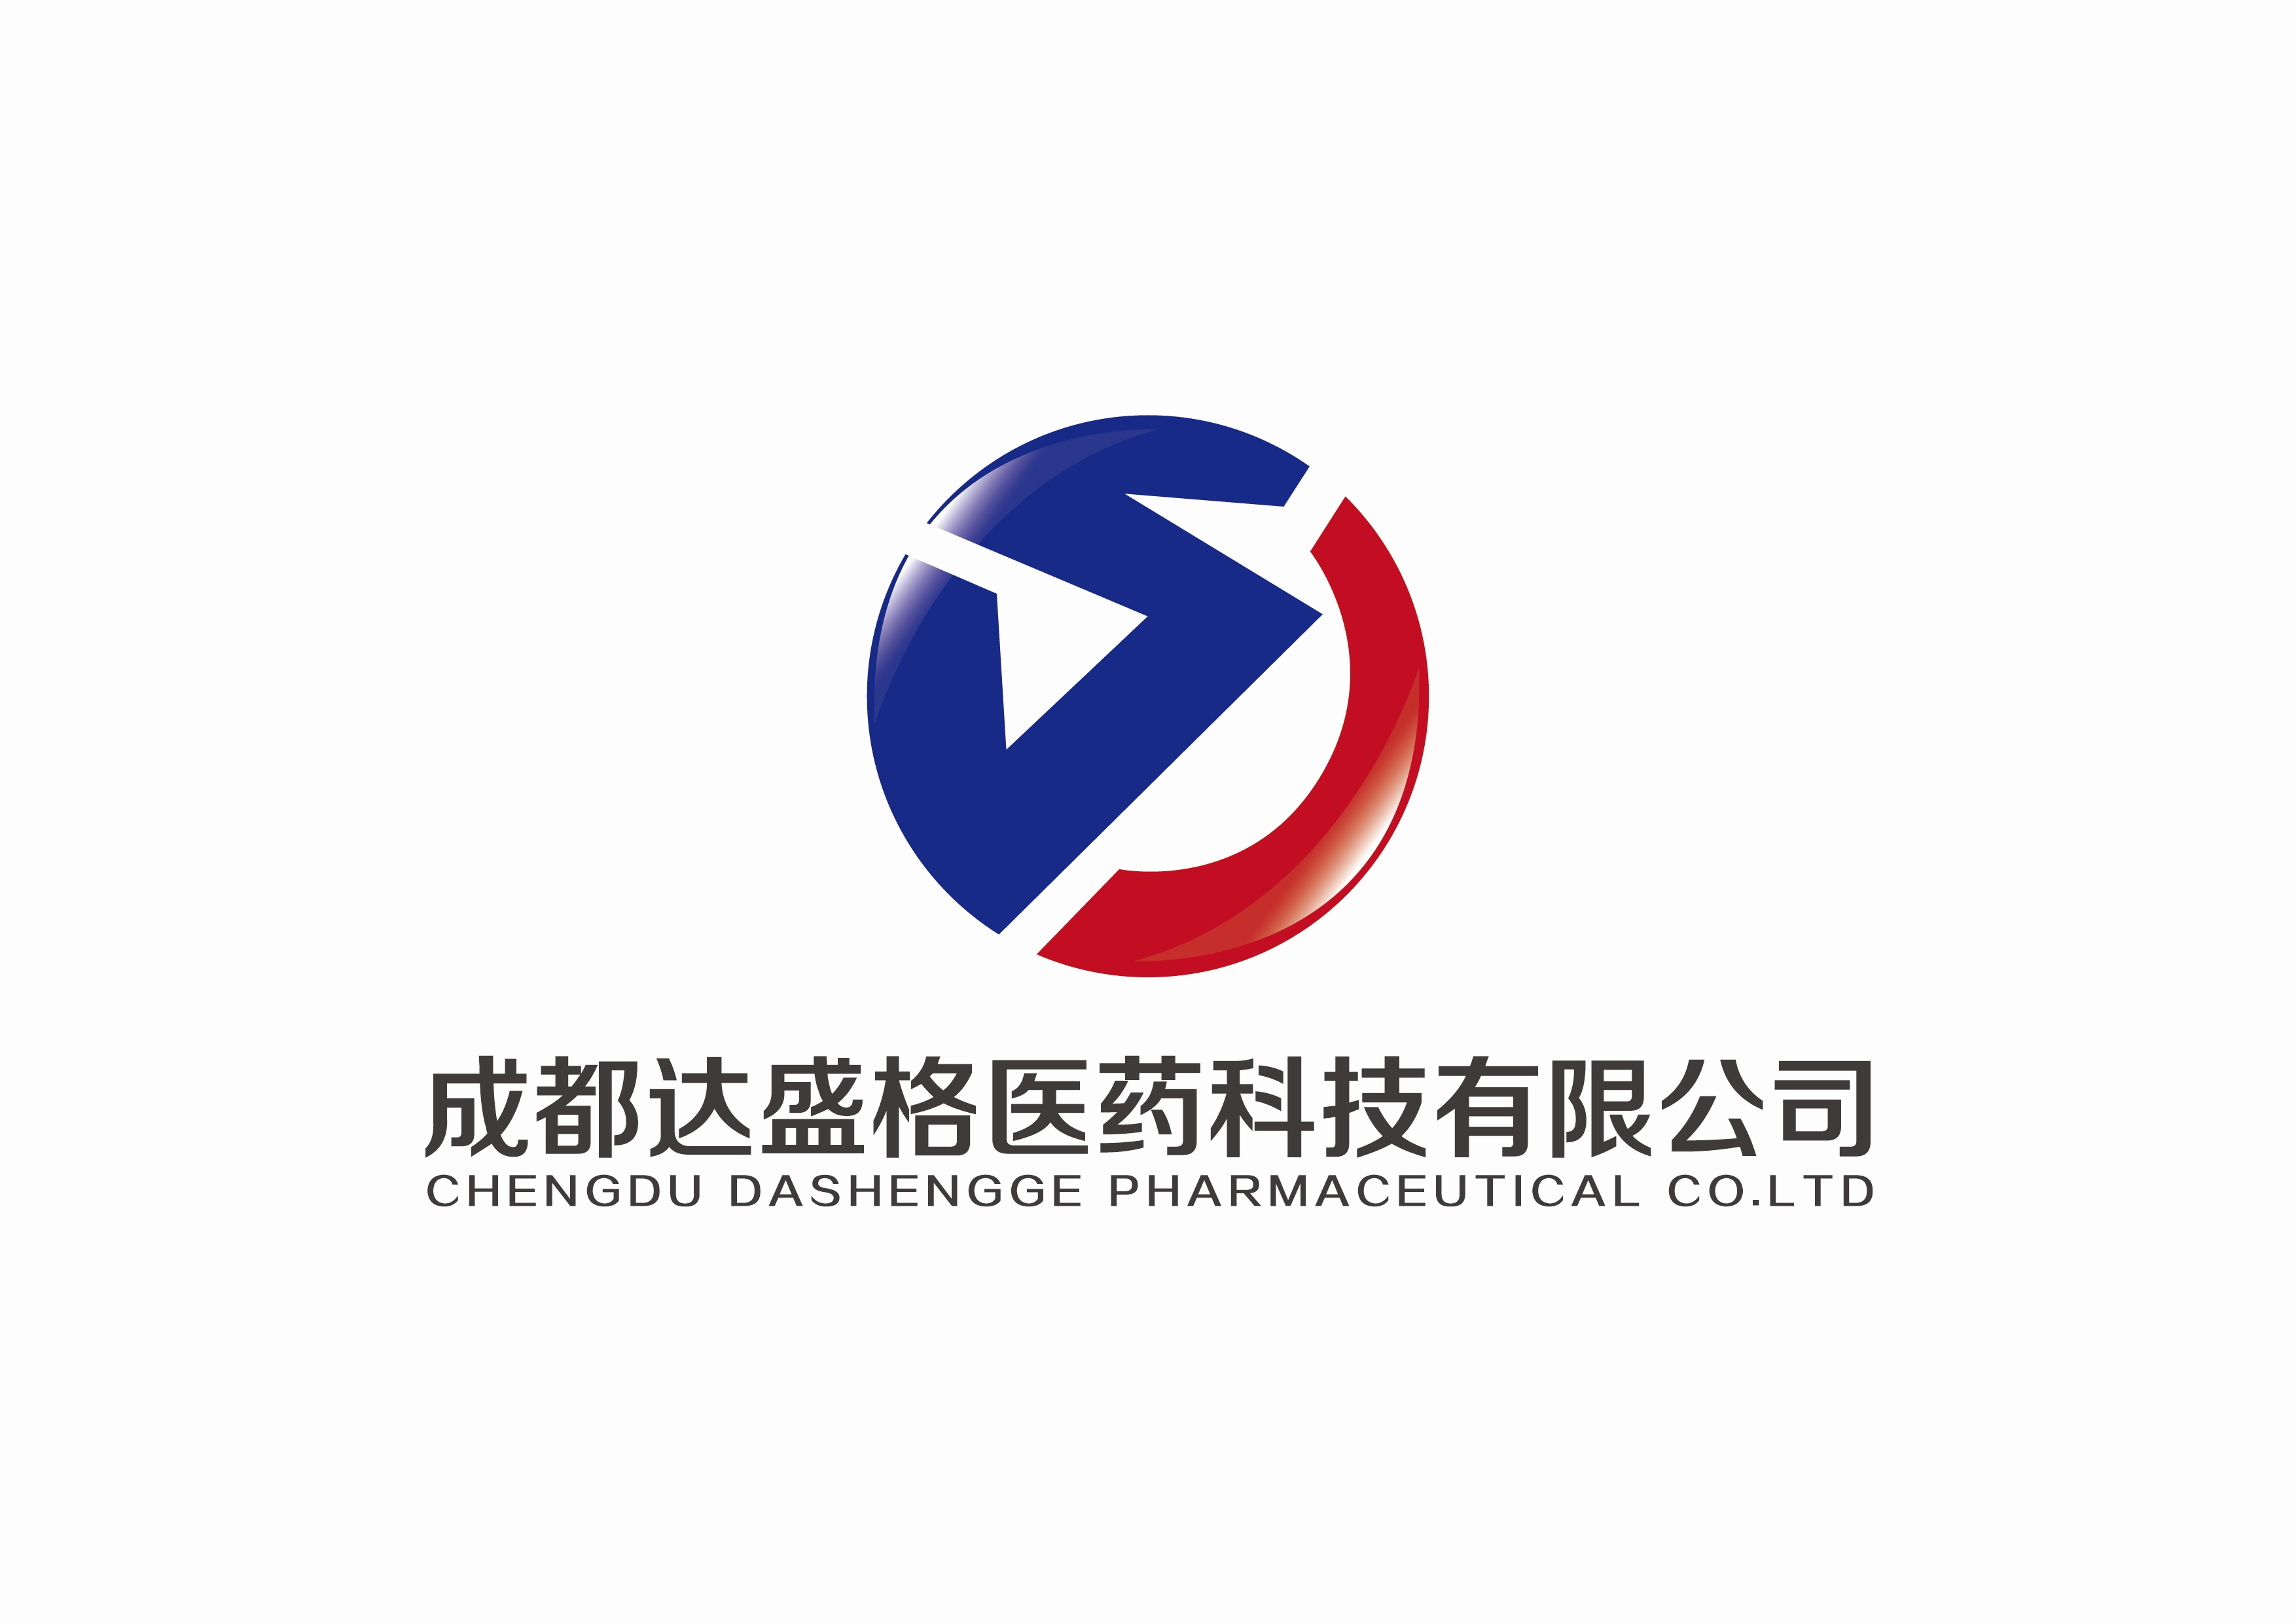 ChengDu DaShengGe Pharmaceutical Co.Ltd